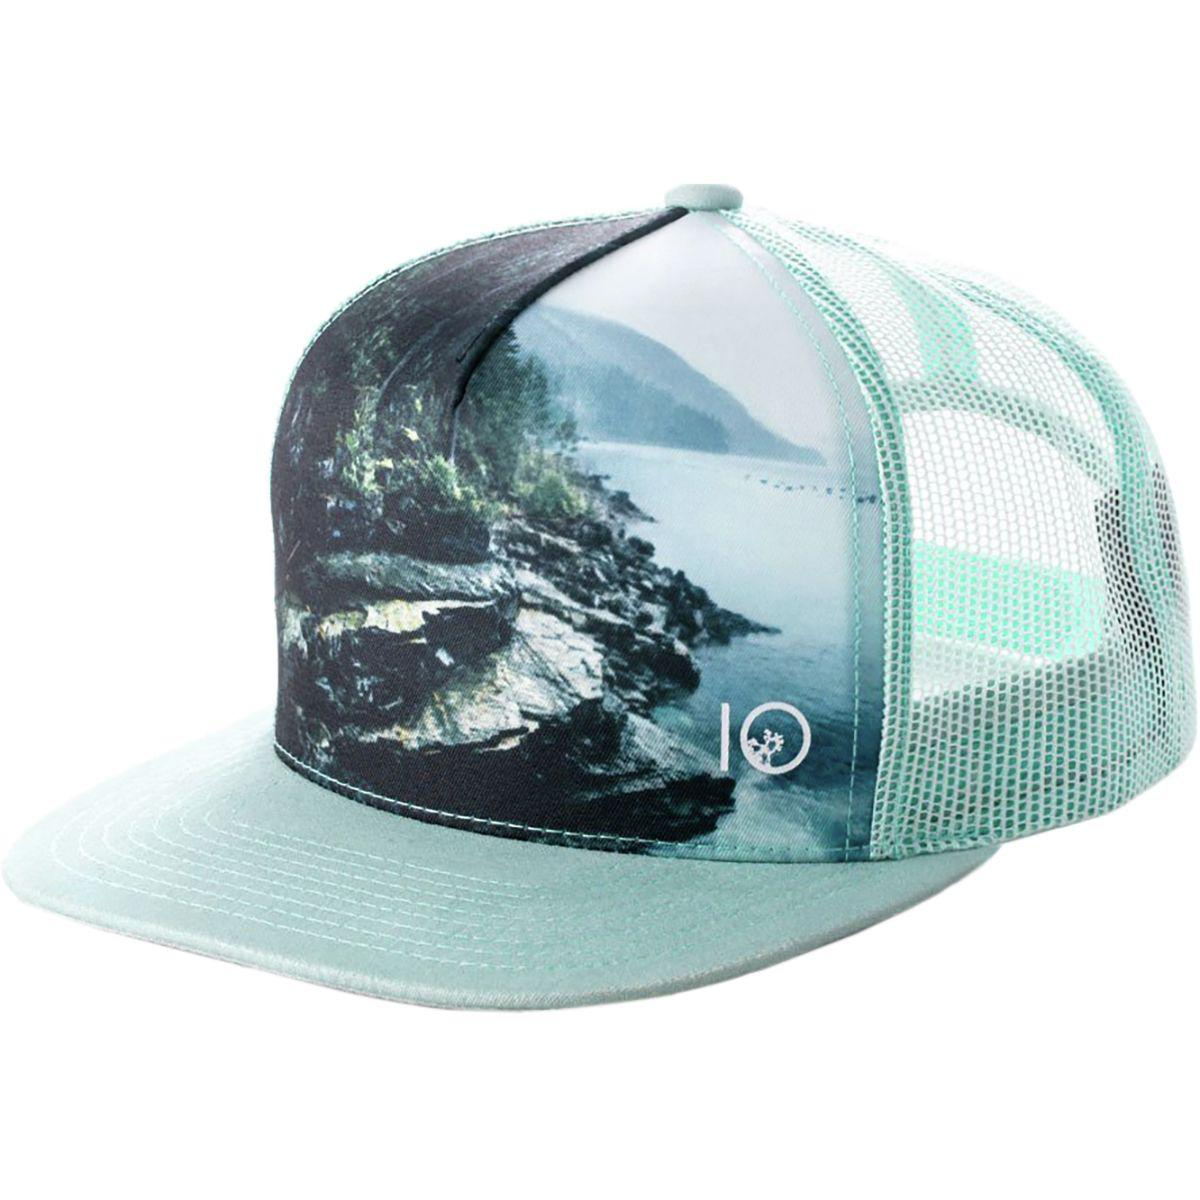 size 40 c2eaa 046e1 sweden tentree grove snapback cap 5e552 a5491  italy lyst tentree outlook  trucker hat in blue for men 381c9 a247b